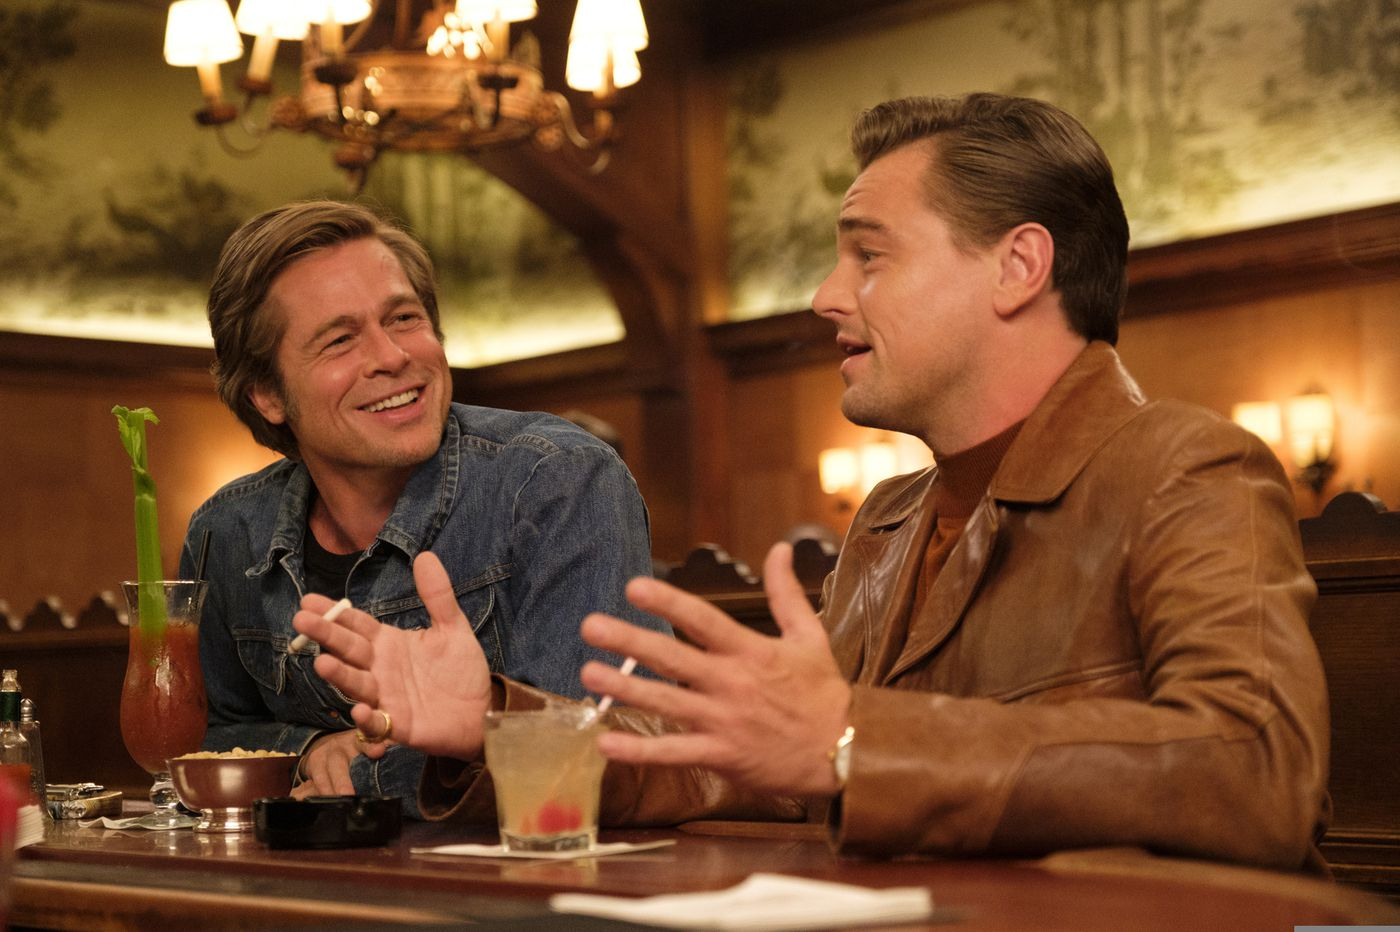 Tarantino's 'Once Upon a Time in ... Hollywood' owns the box office. Why are theatergoers flocking to see it a